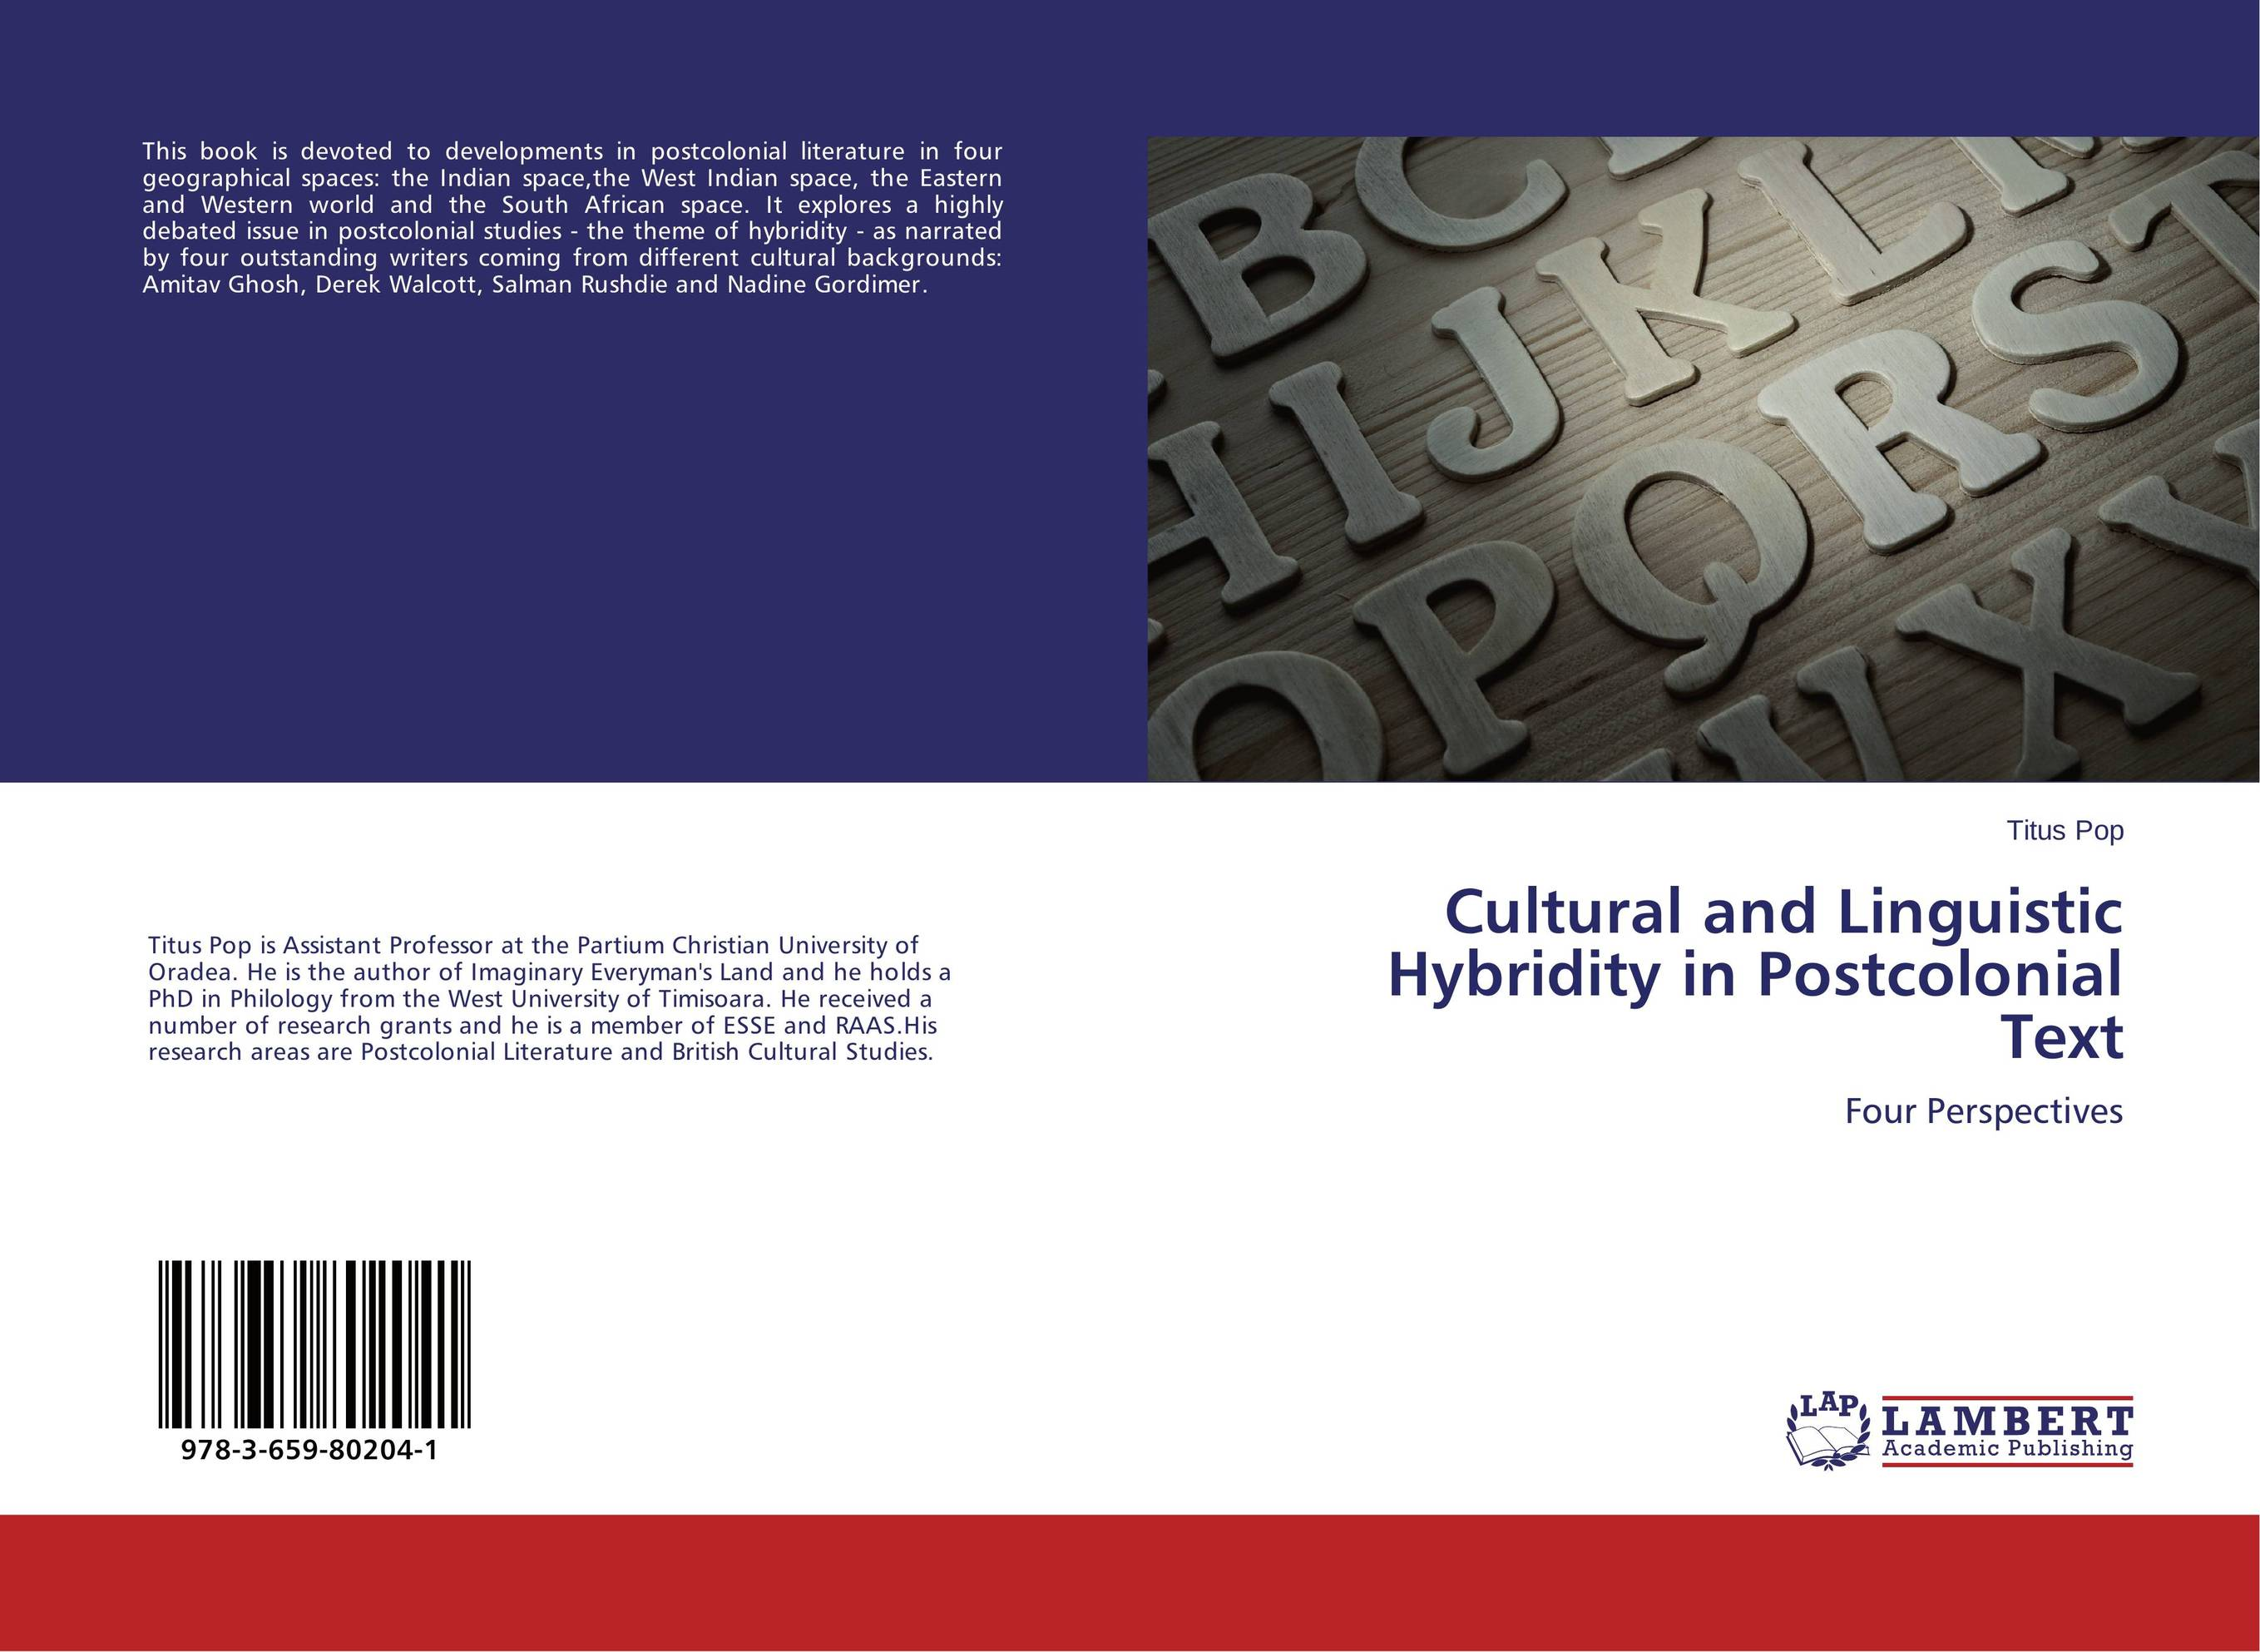 Cultural and Linguistic Hybridity in Postcolonial Text tools of sustainable cultural heritage management in aksum ethiopia